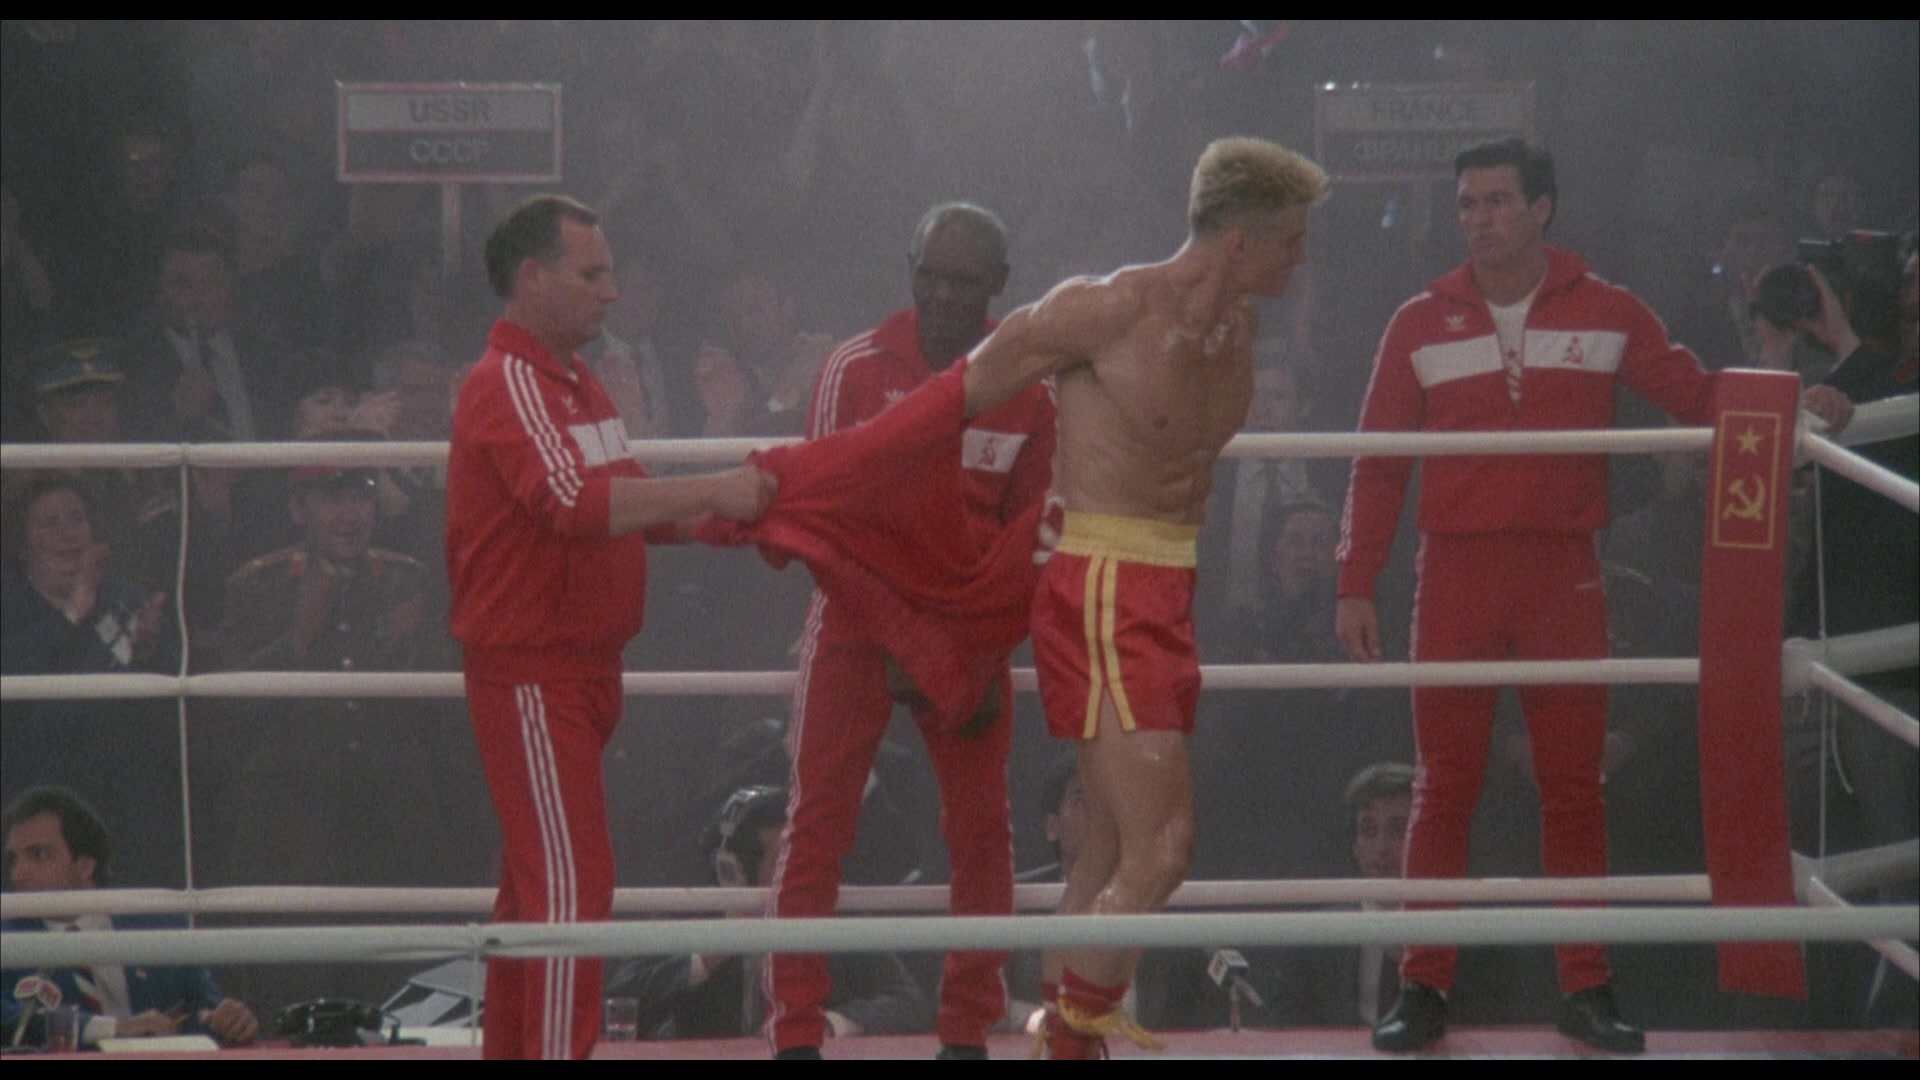 Adidas Tracksuits (Red) Worn By Russians In Rocky 4 (1985)